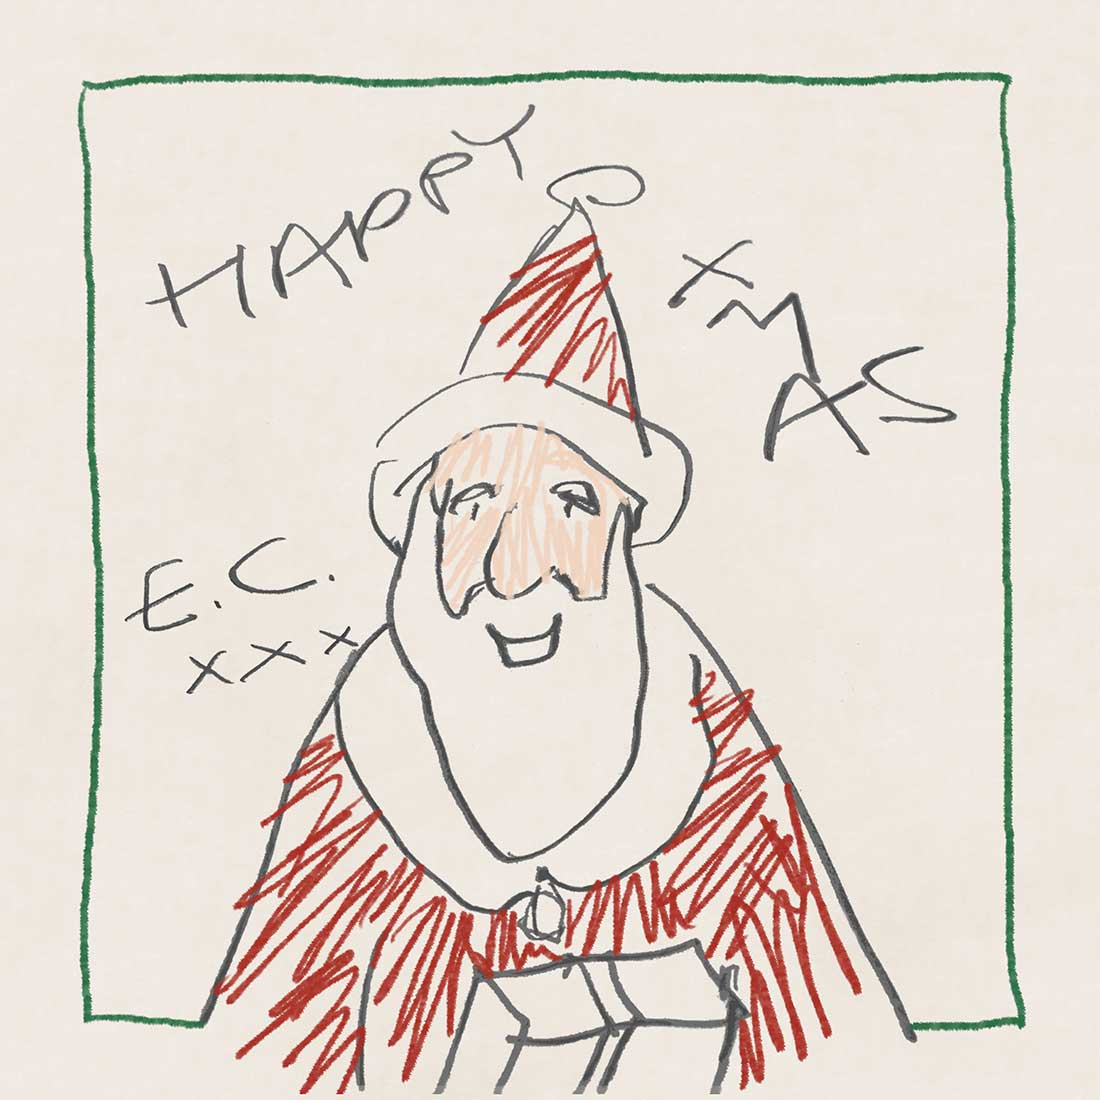 Eric Clapton - Happy Christmas CD - Cracker Barrel Old Country Store